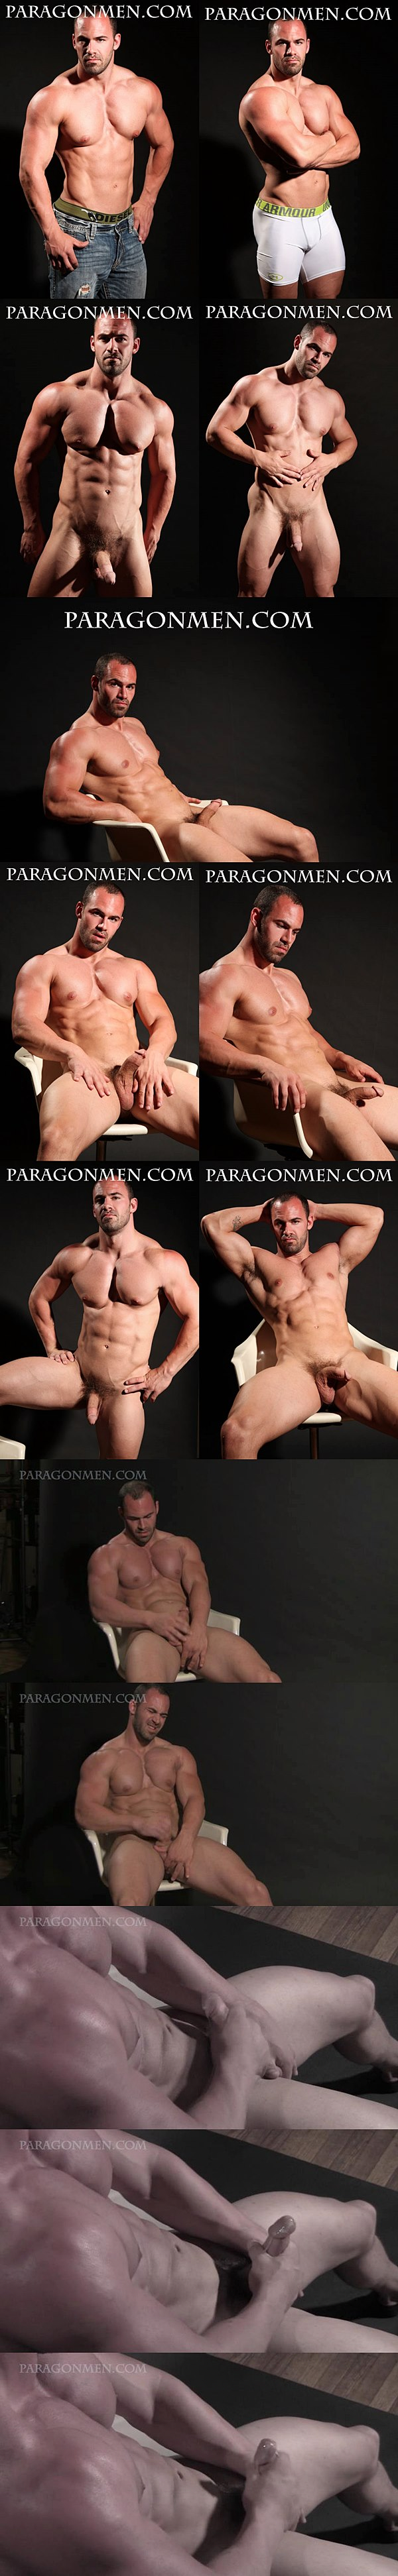 Masculine muscle hunk Rex shows off his hot body shape before he shoots his thick cum at Paragonmen